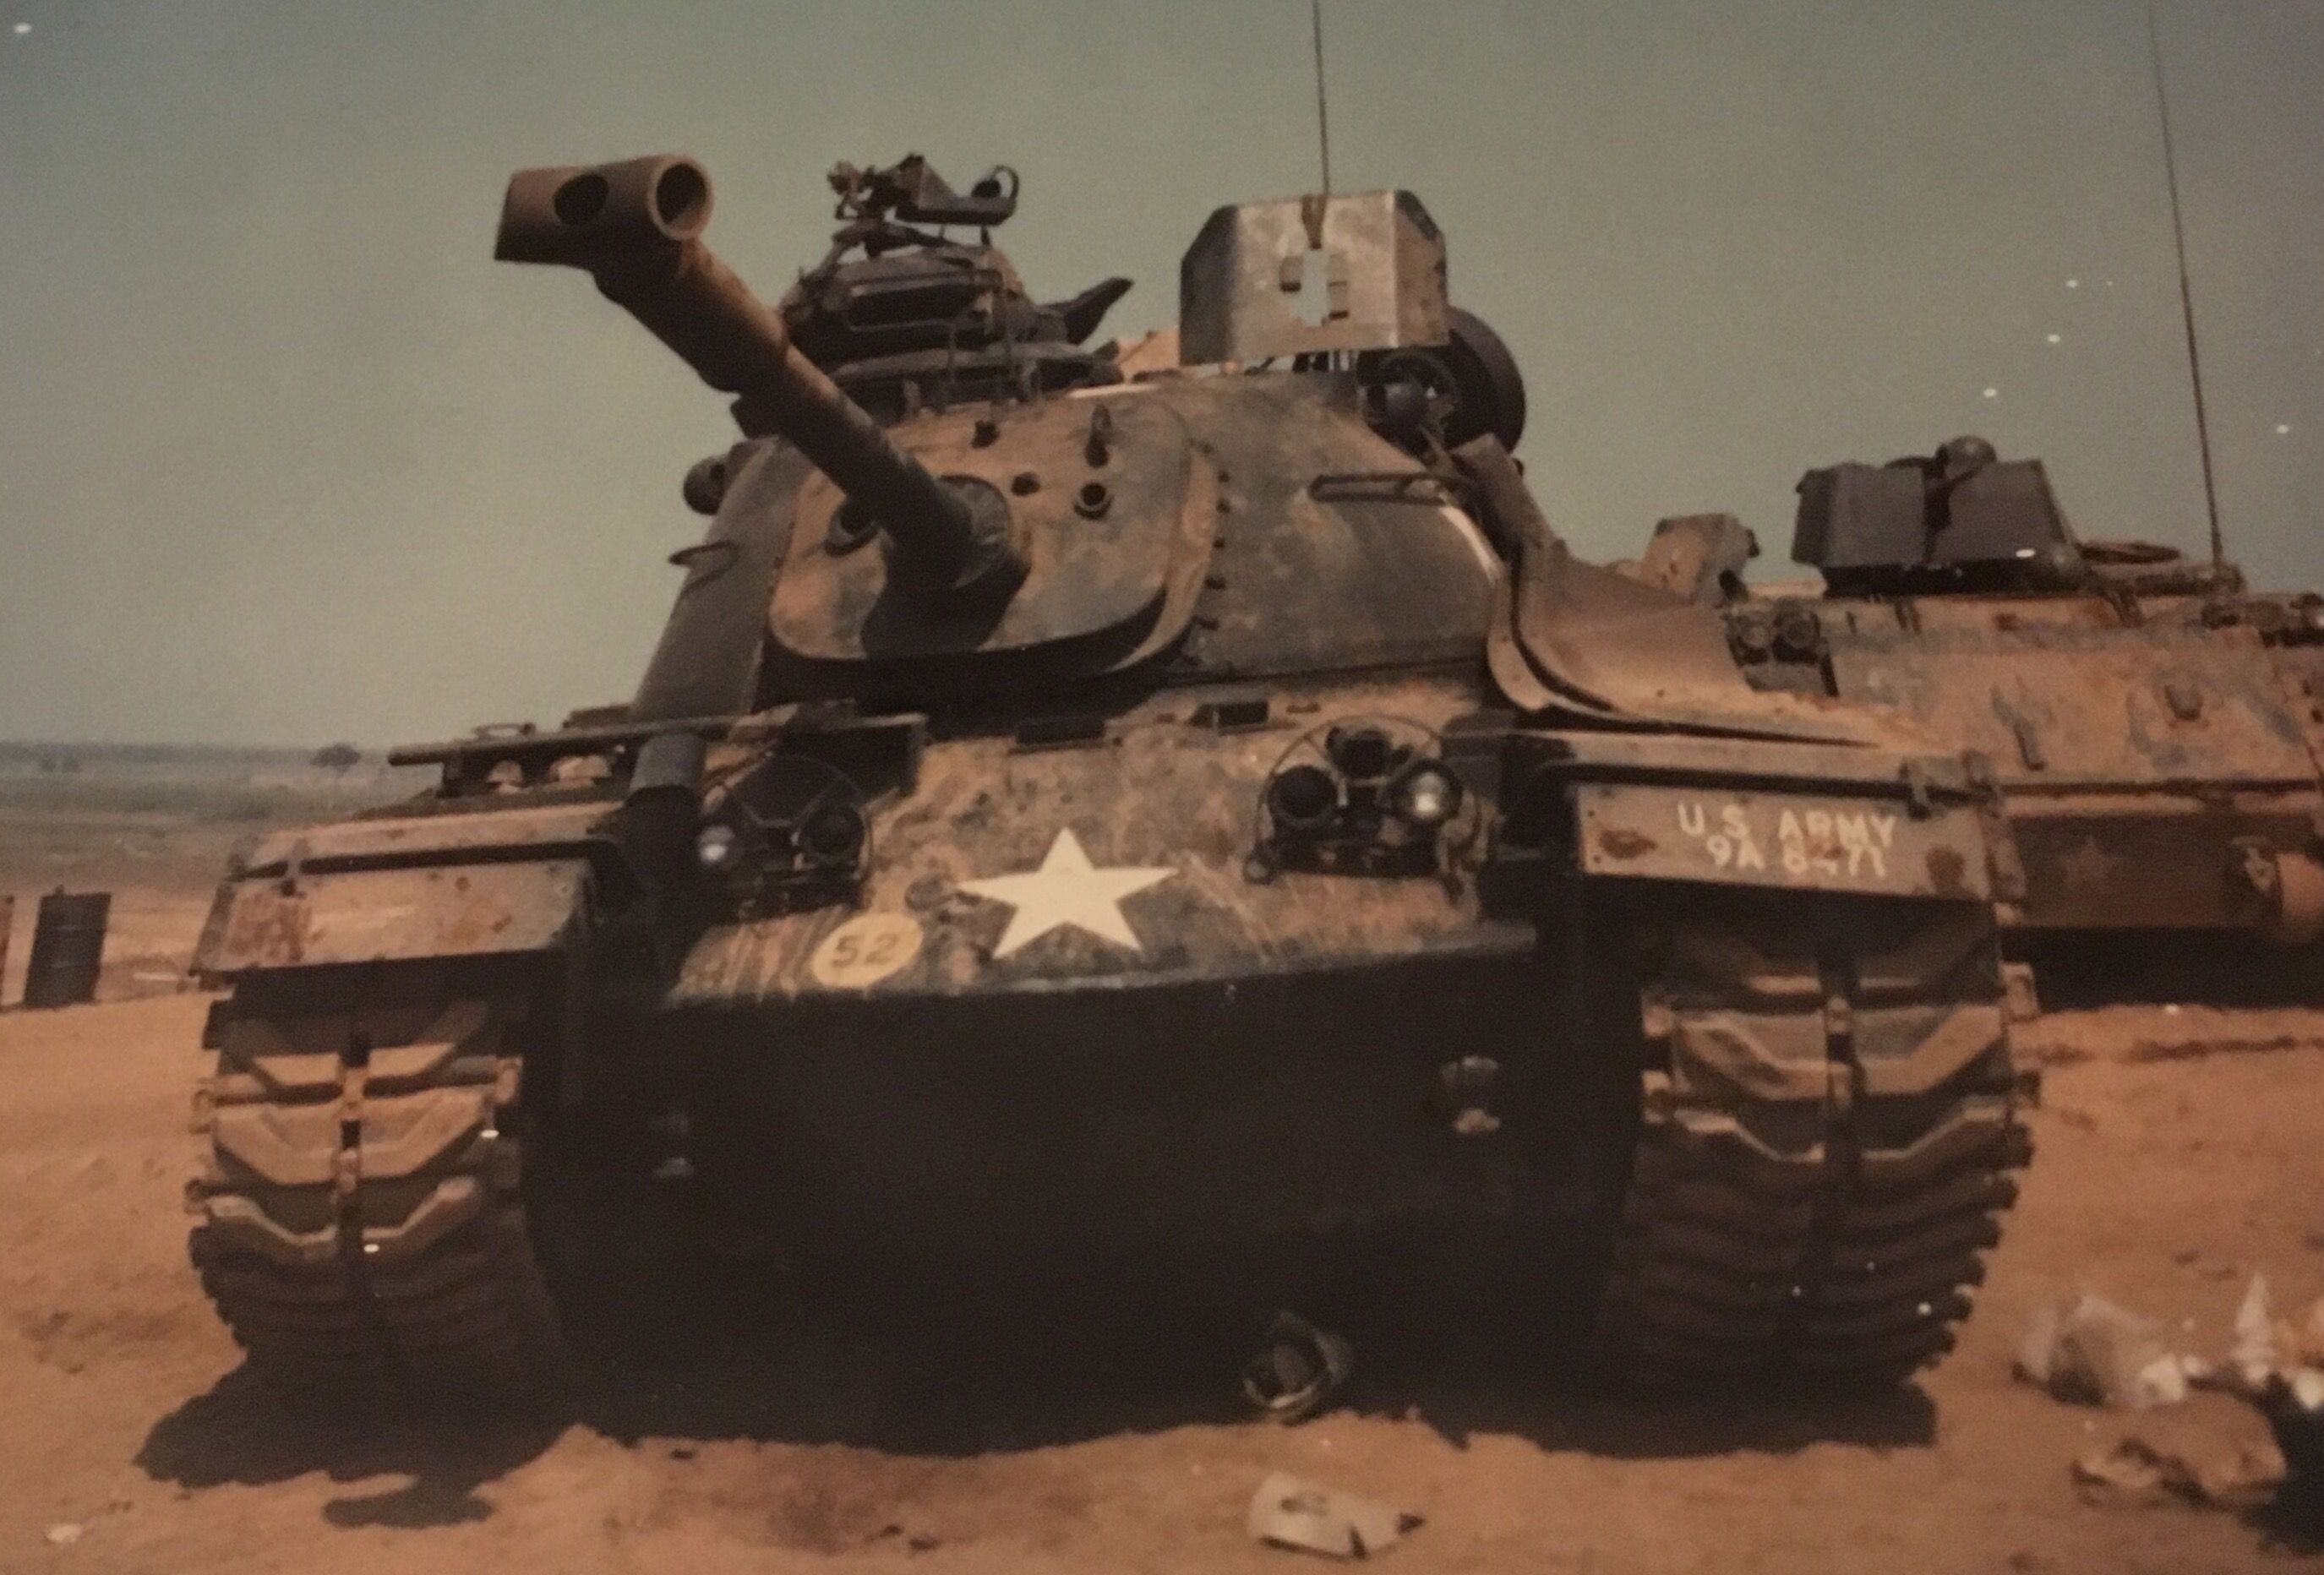 M48A3 (A-15) from A Troop, 1st Squadron, 1st Cavalry